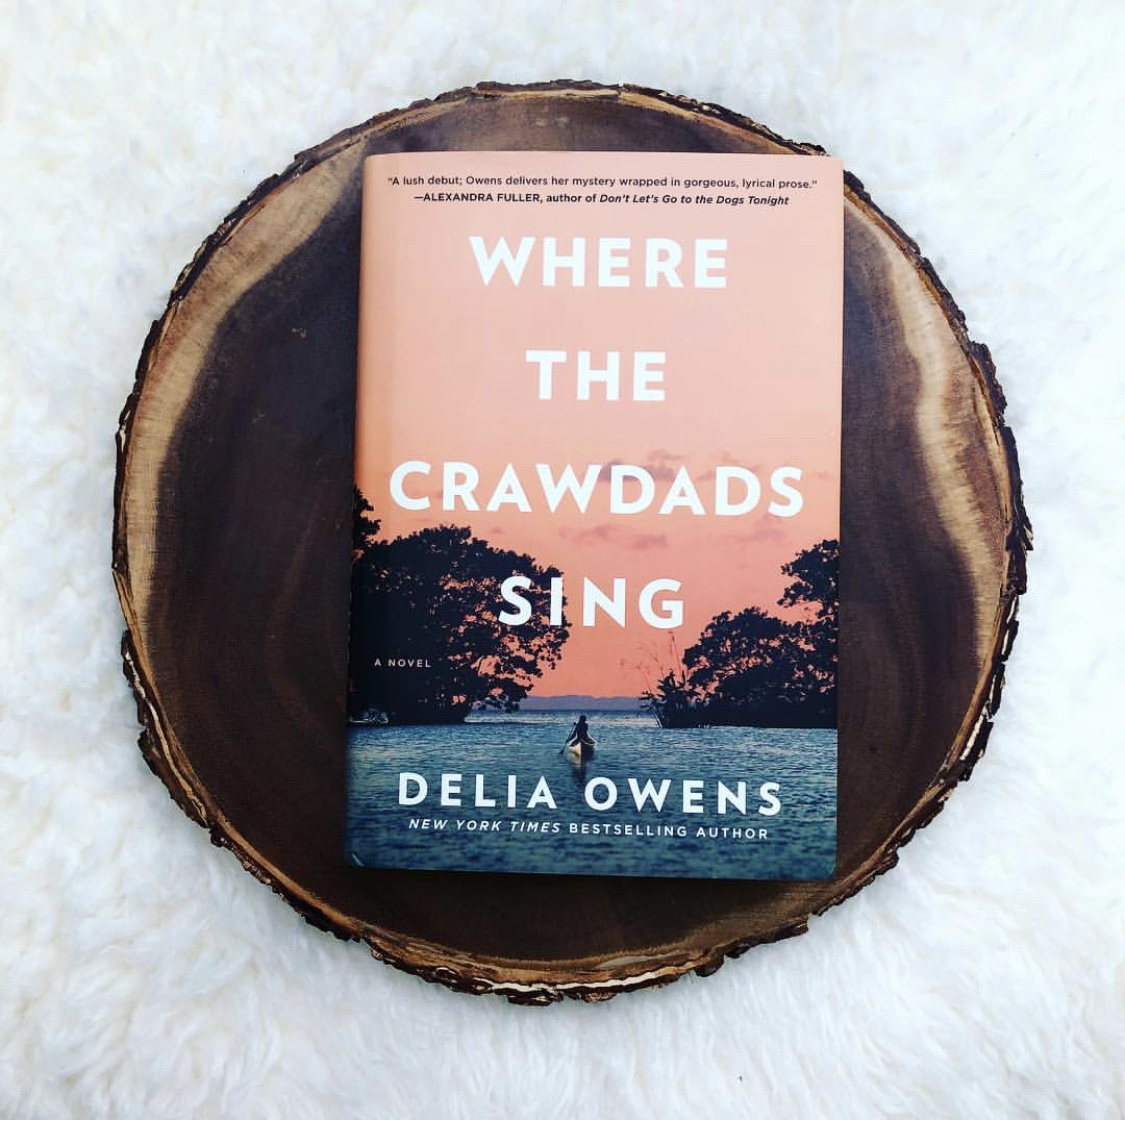 image regarding Printable Book Club Questions identify How in the direction of Host a Ebook Club for Wherever the Crawdads Sing via Delia